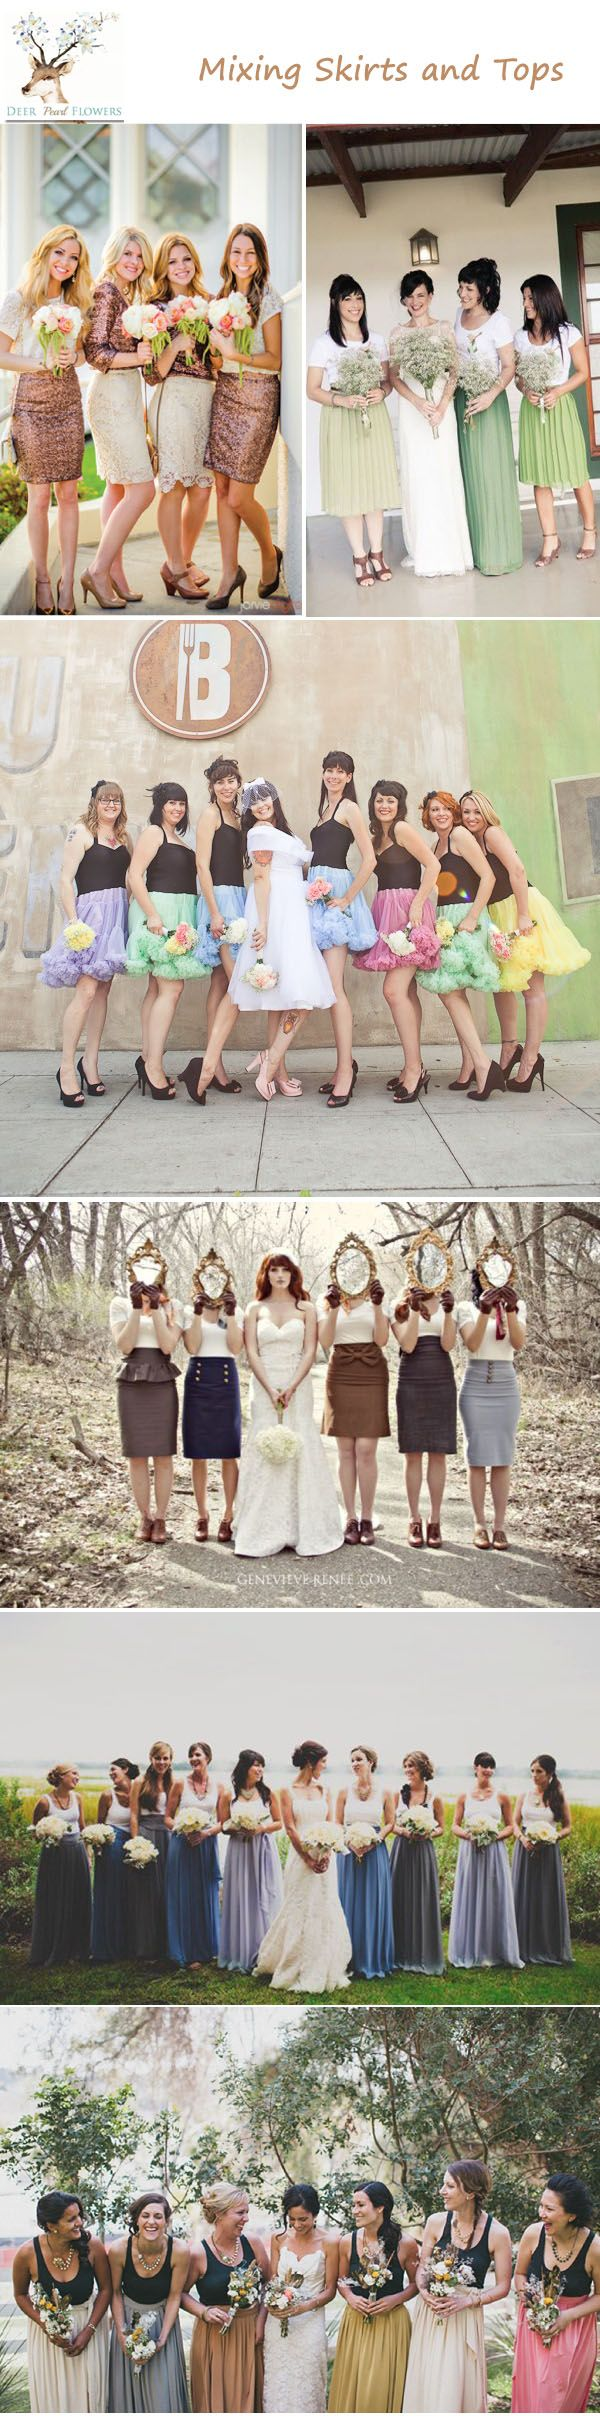 unique bridesmaid dress ideas - mixing skirts and tops mismatched bridesmaid dress / http://www.deerpearlflowers.com/top-6-ways-to-do-mismatch-bridesmaid-dresses/